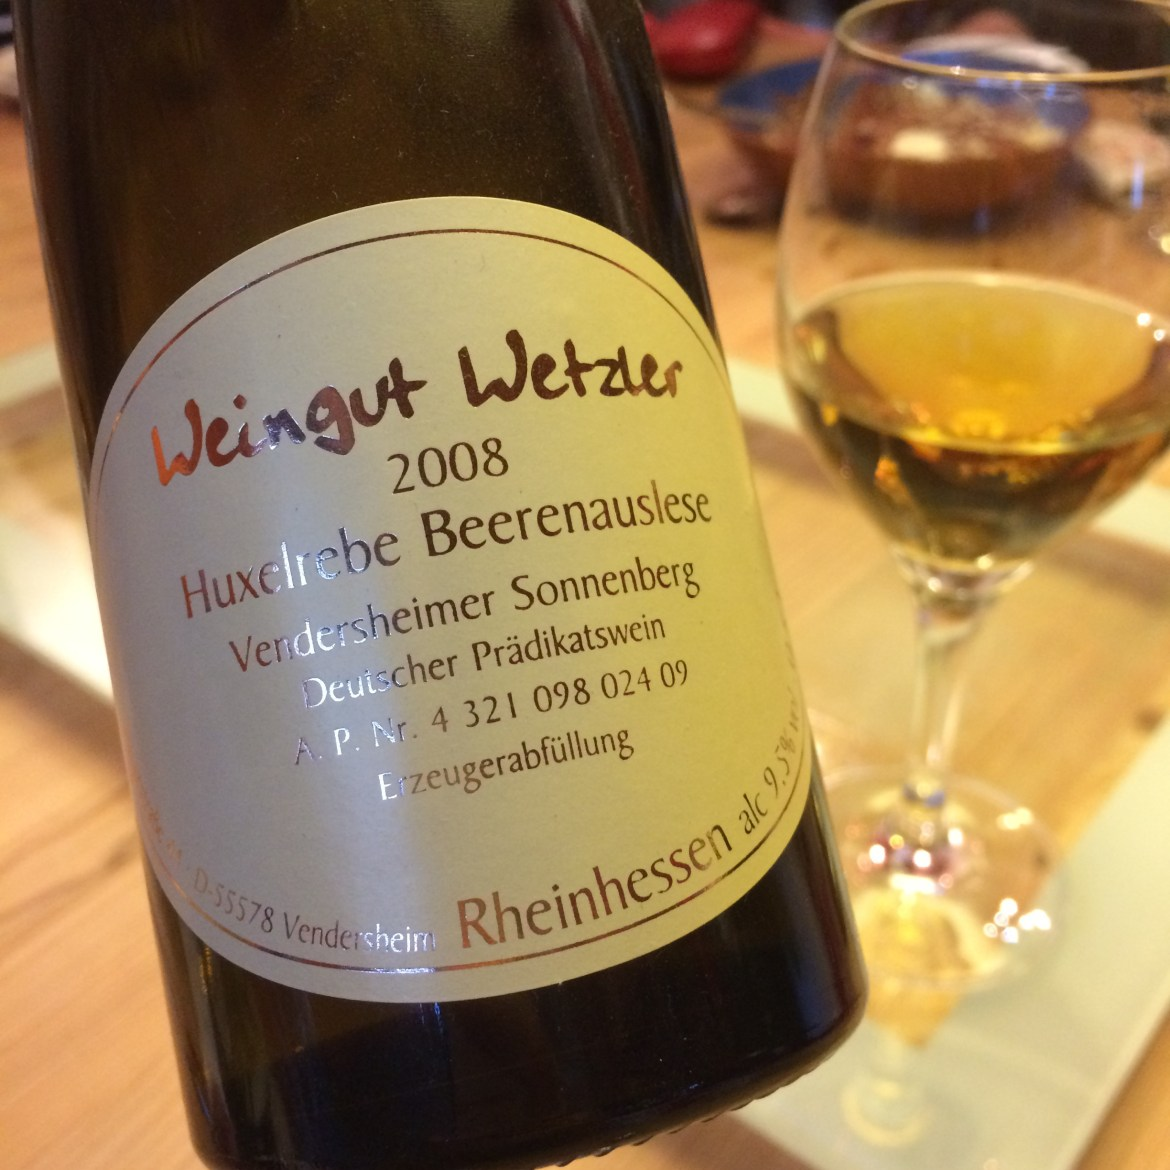 A bottle of Huxelrebe Beerenauslese Wine Weingut Wetzler and glass